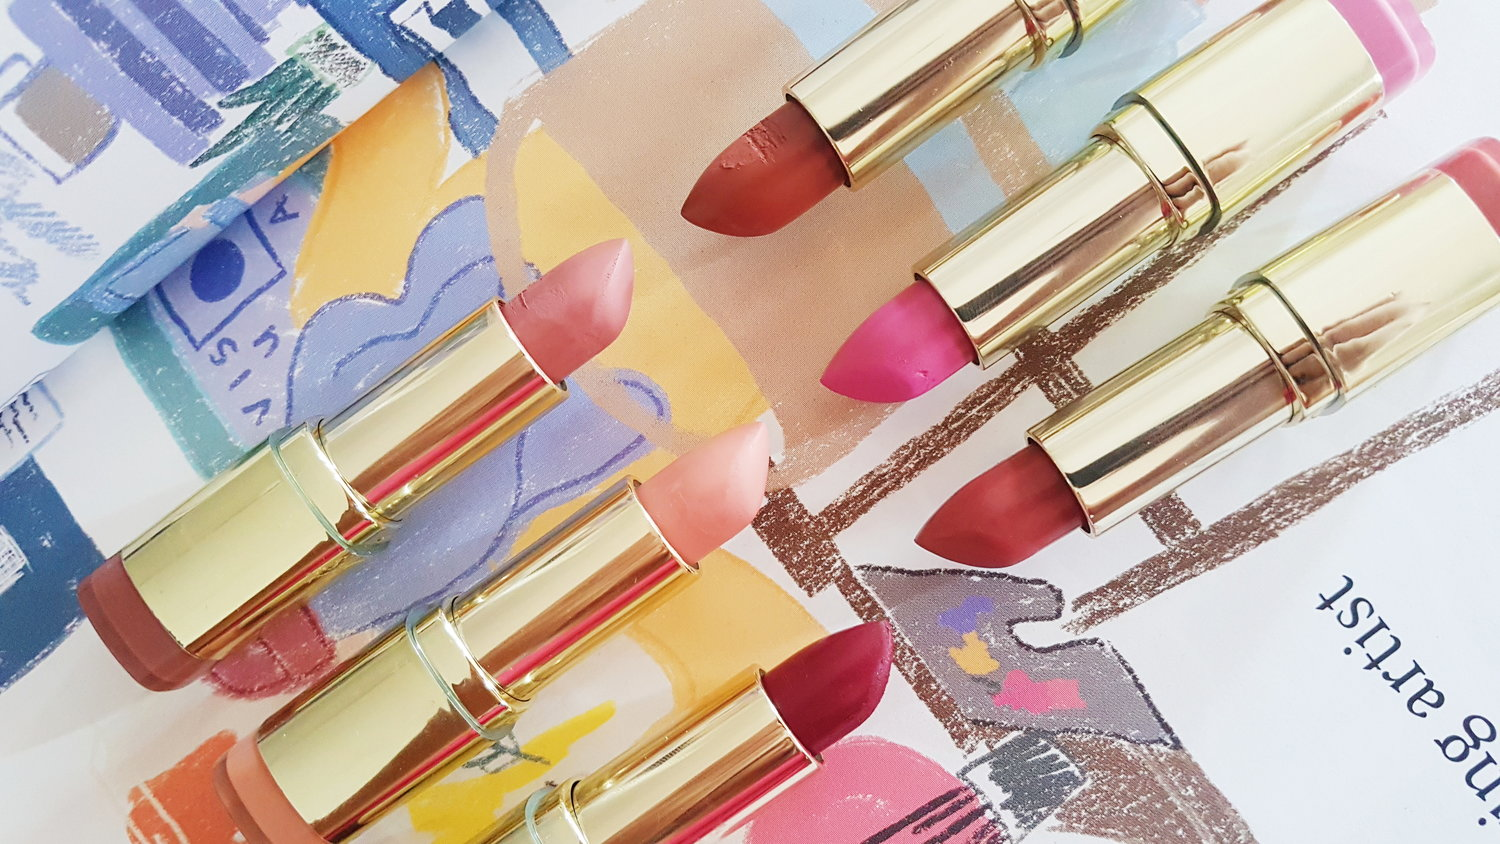 Milani Color Statement Lipsticks from Lannel Boutique